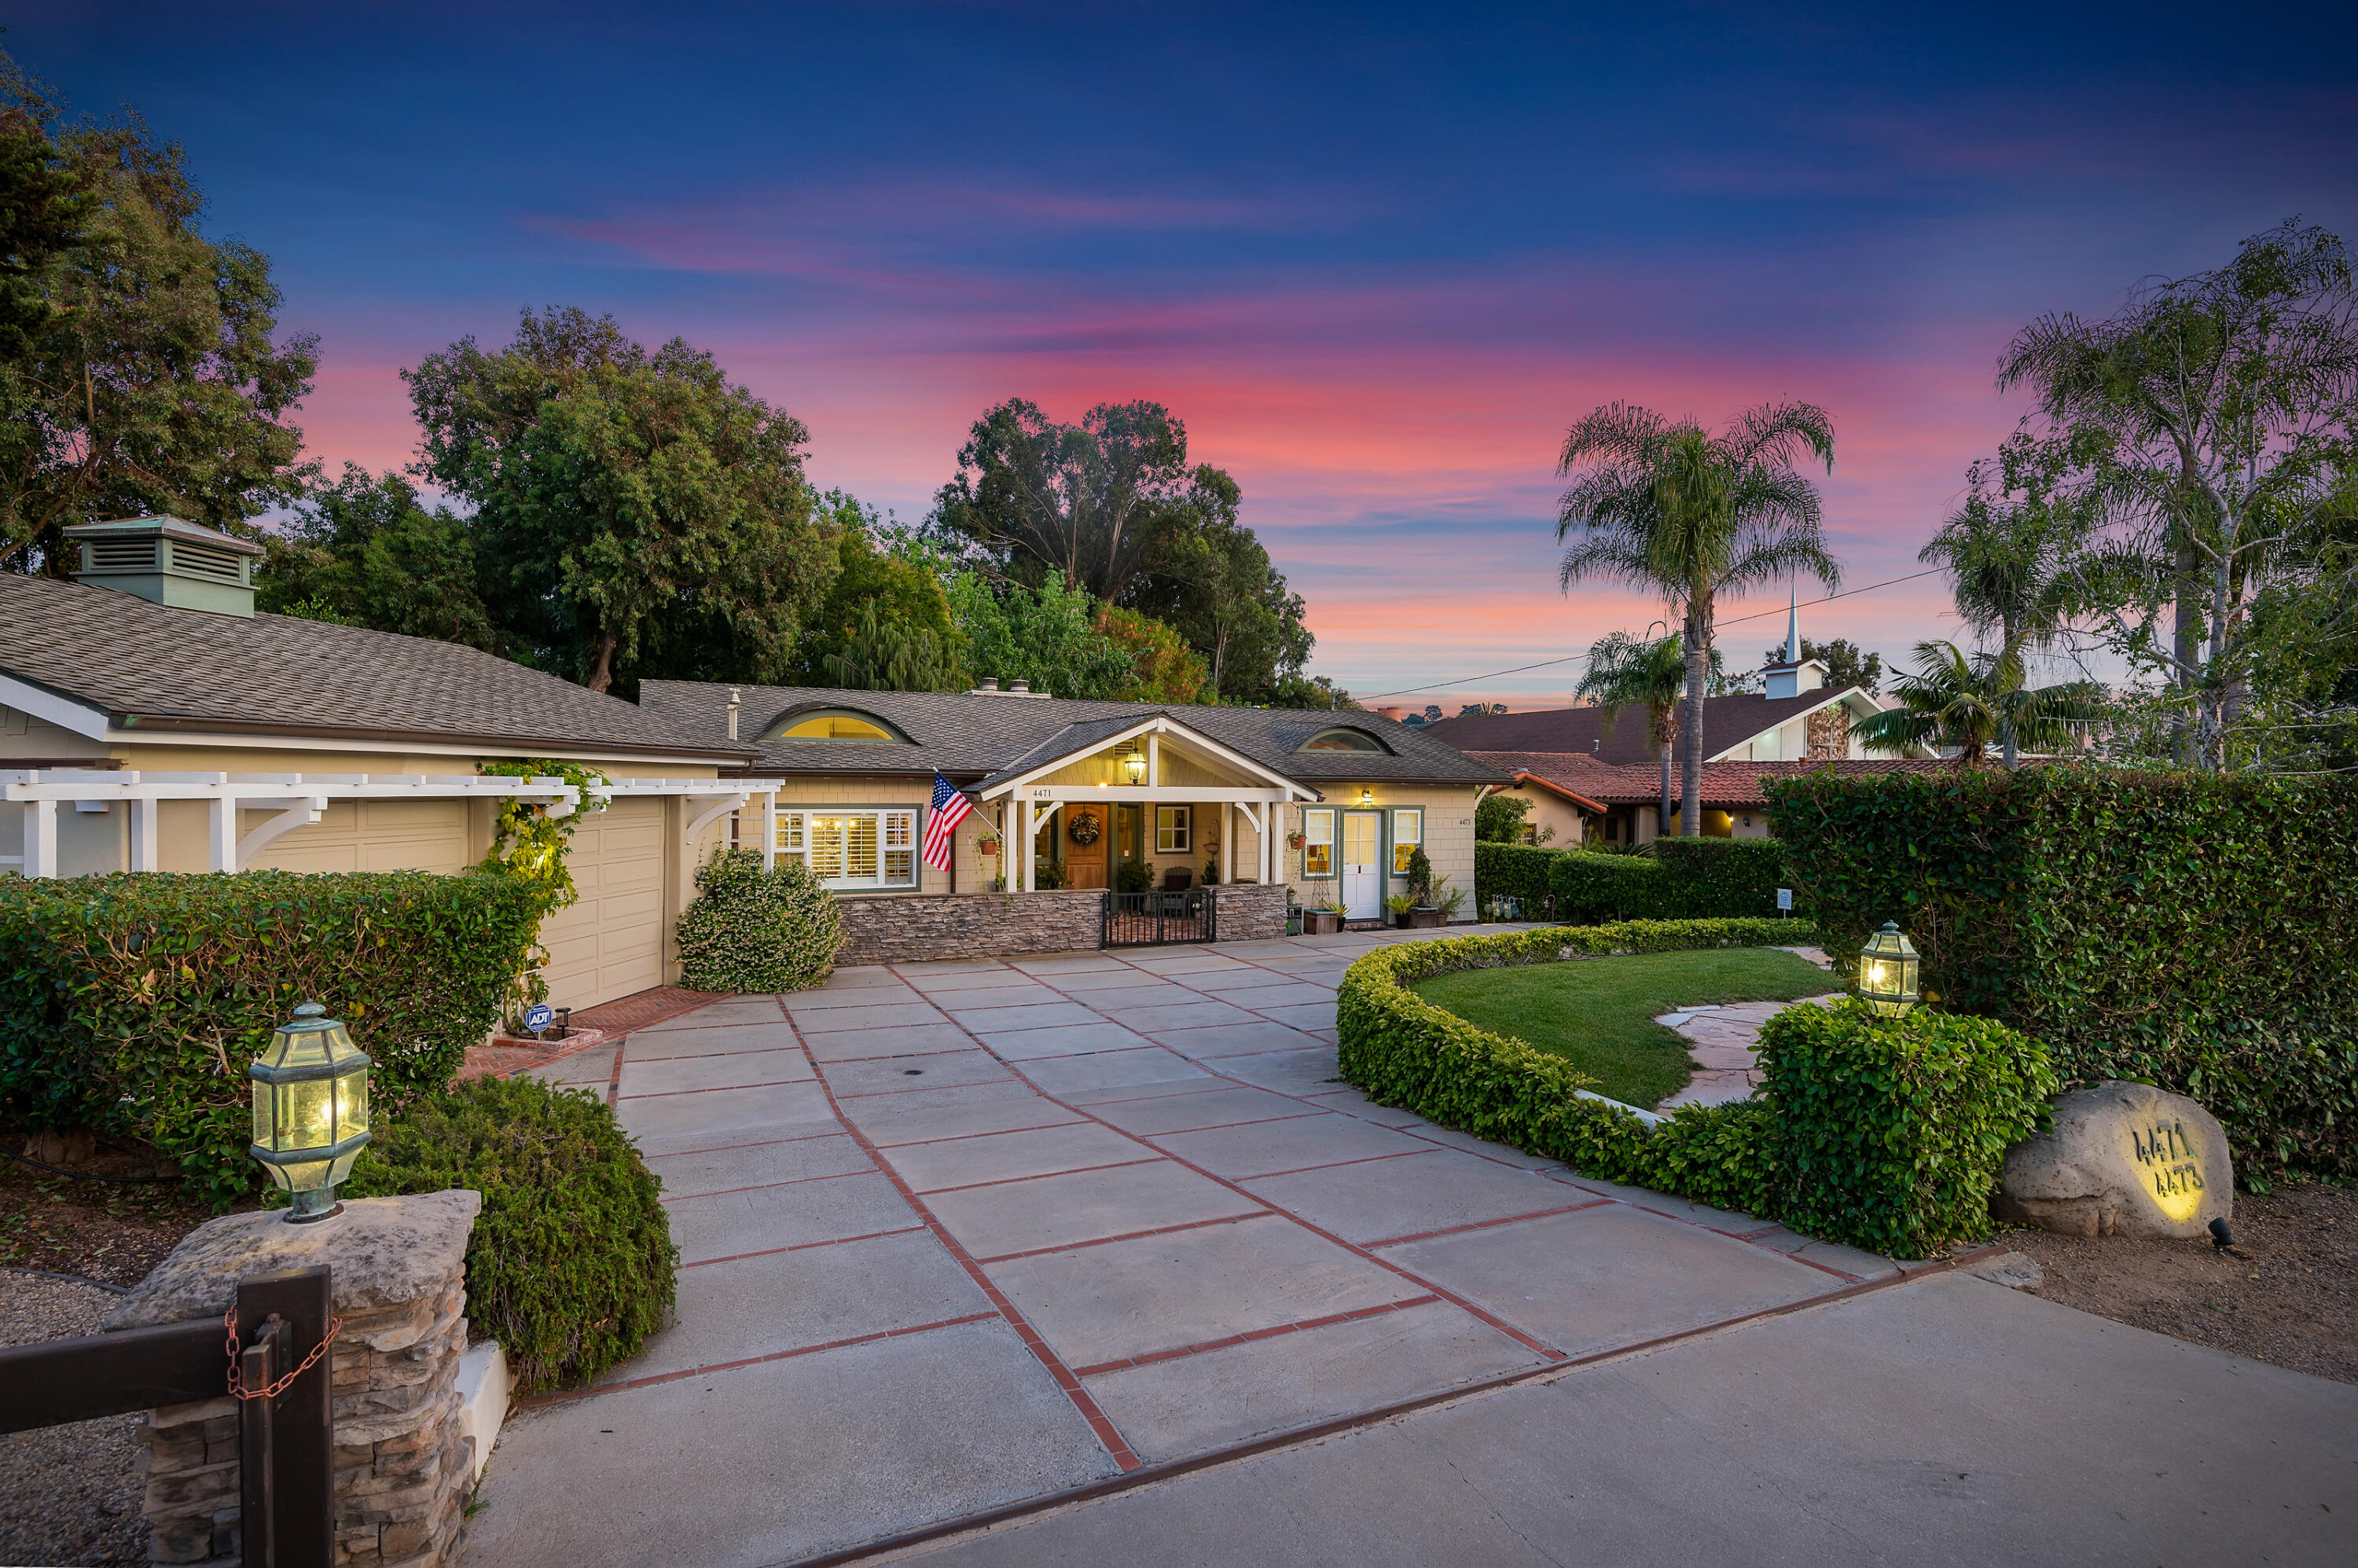 Stunning country French mini-estate, 4 bd 3 ba, appx 2700SF plus 1 bd 1 ba, guest house, appx 600SF in a park-like setting.  The living rm w vaulted ceilings, wood floors & striking fireplace is flanked by French doors & looks out onto expansive lawn, brick patios, fruit trees, fireplace & fountains. A gourmet kitchen, w large island, dinette, pantry & counter seating is the heart of this amazing home plus formal dining, sep laundry rm, attached 2 car garage, workshop & office.  Main en suite & 2 bdrms, one w a reading loft & the other a private entrance, enhance flexibility of multi living. Downstairs is an elegant 3 rm suite, with separate bdrm & bath. The guesthouse is perfect for friends, in-laws or office has sep laundry & patio. Located in the renowned Vieja Valley Elementary School~ A California Distinguished School w La Colina Junior High &  San Marcos High School in close proximity.    This is a neighborhood where folks meet at the local coffee shop, parents and grandparents see their kidos off to school, little league is played nearby, horses still walk down the path and you can dance at the local tavern across the street.   Hope Ranch Annex is minutes from the bike path, horse trails, ocean bluffs and the beaches plus it's only 10 minutes from downtown Santa Barbara or the airport.    Seize the opportunity to own this piece of Santa Barbara; an elegant, beautifully designed home with multiple rental possibilities and flexible living.